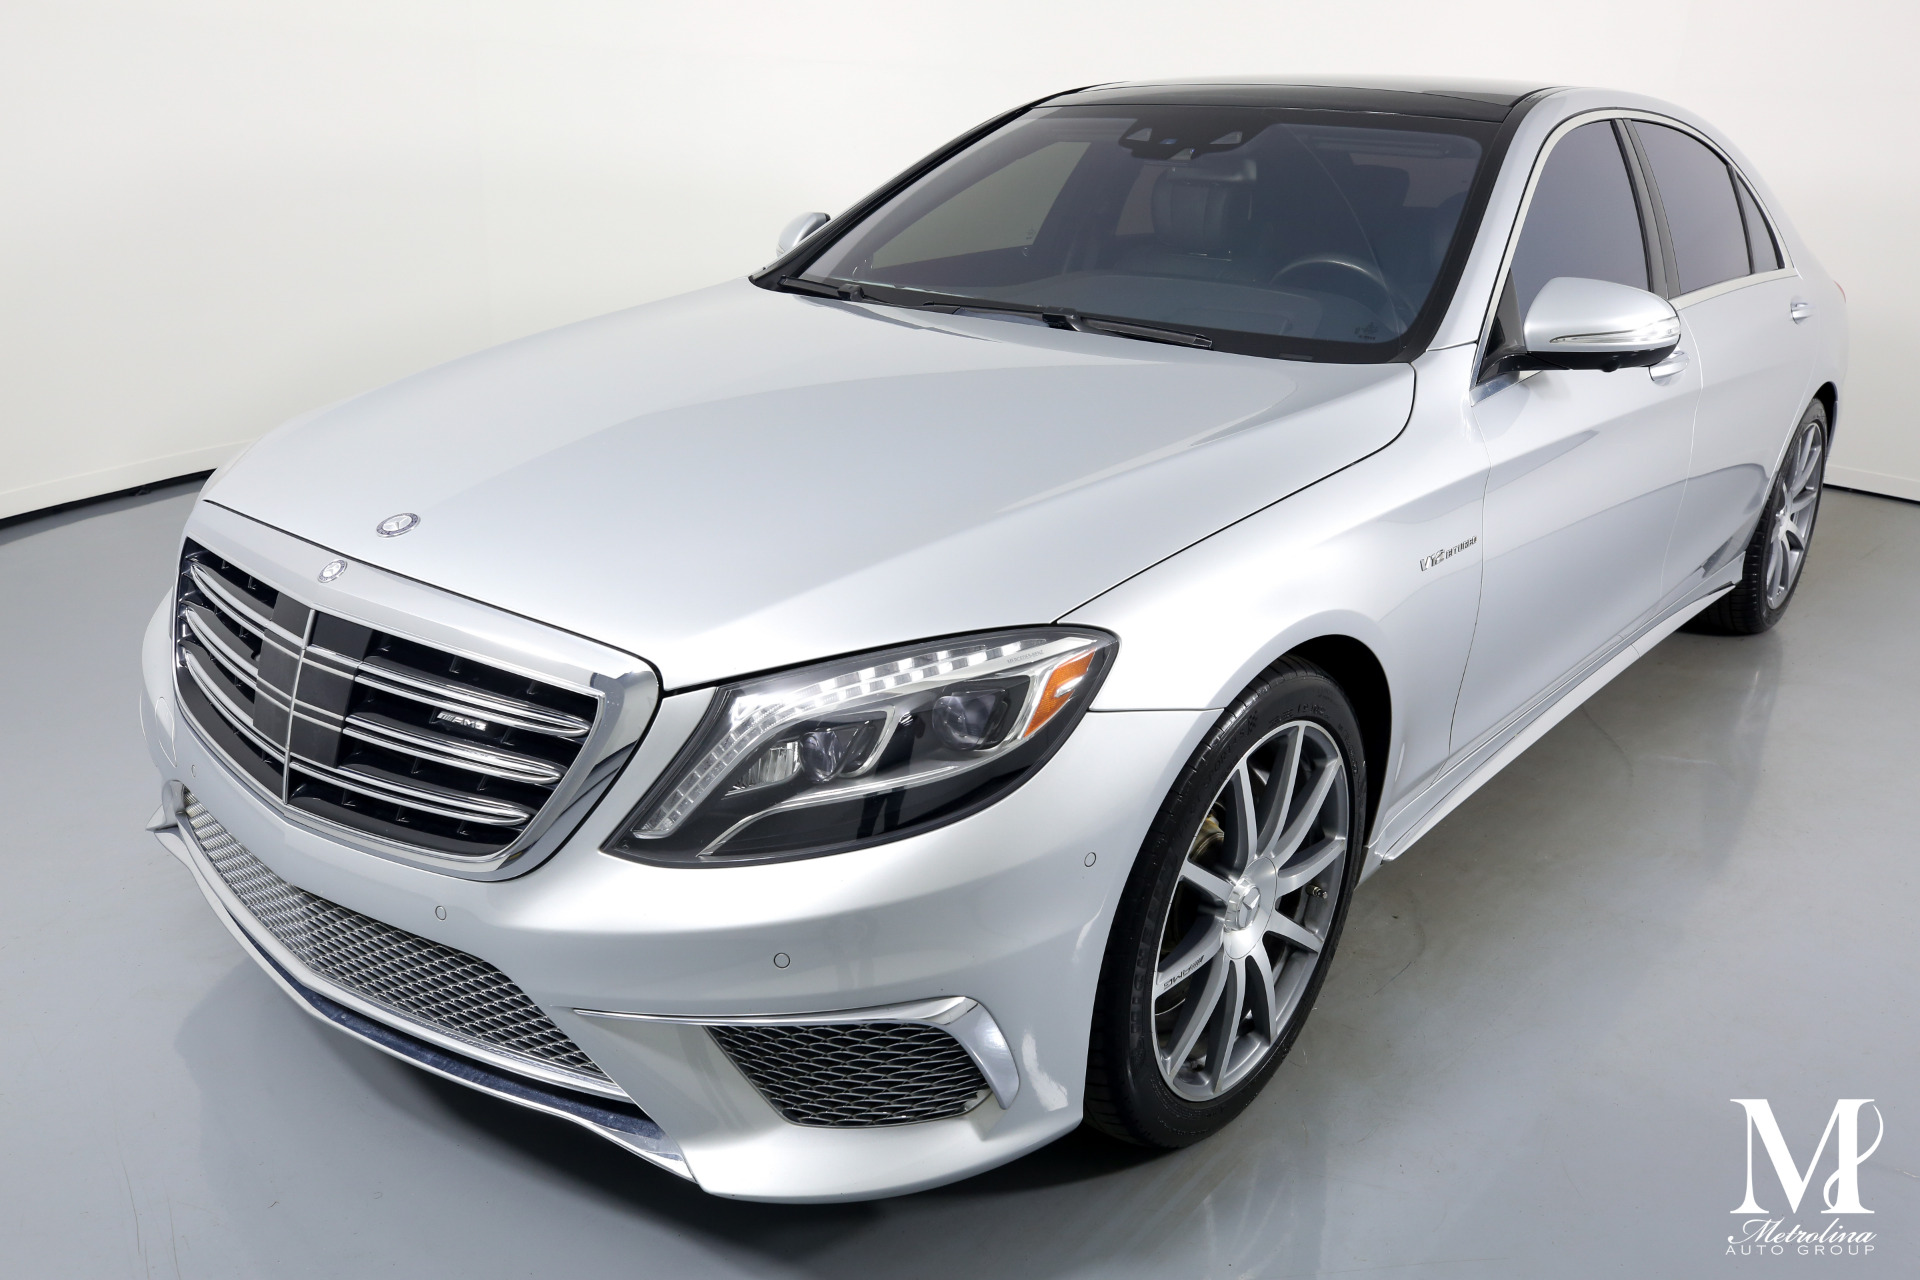 Used 2015 Mercedes-Benz S-Class S 65 AMG for sale $74,996 at Metrolina Auto Group in Charlotte NC 28217 - 4